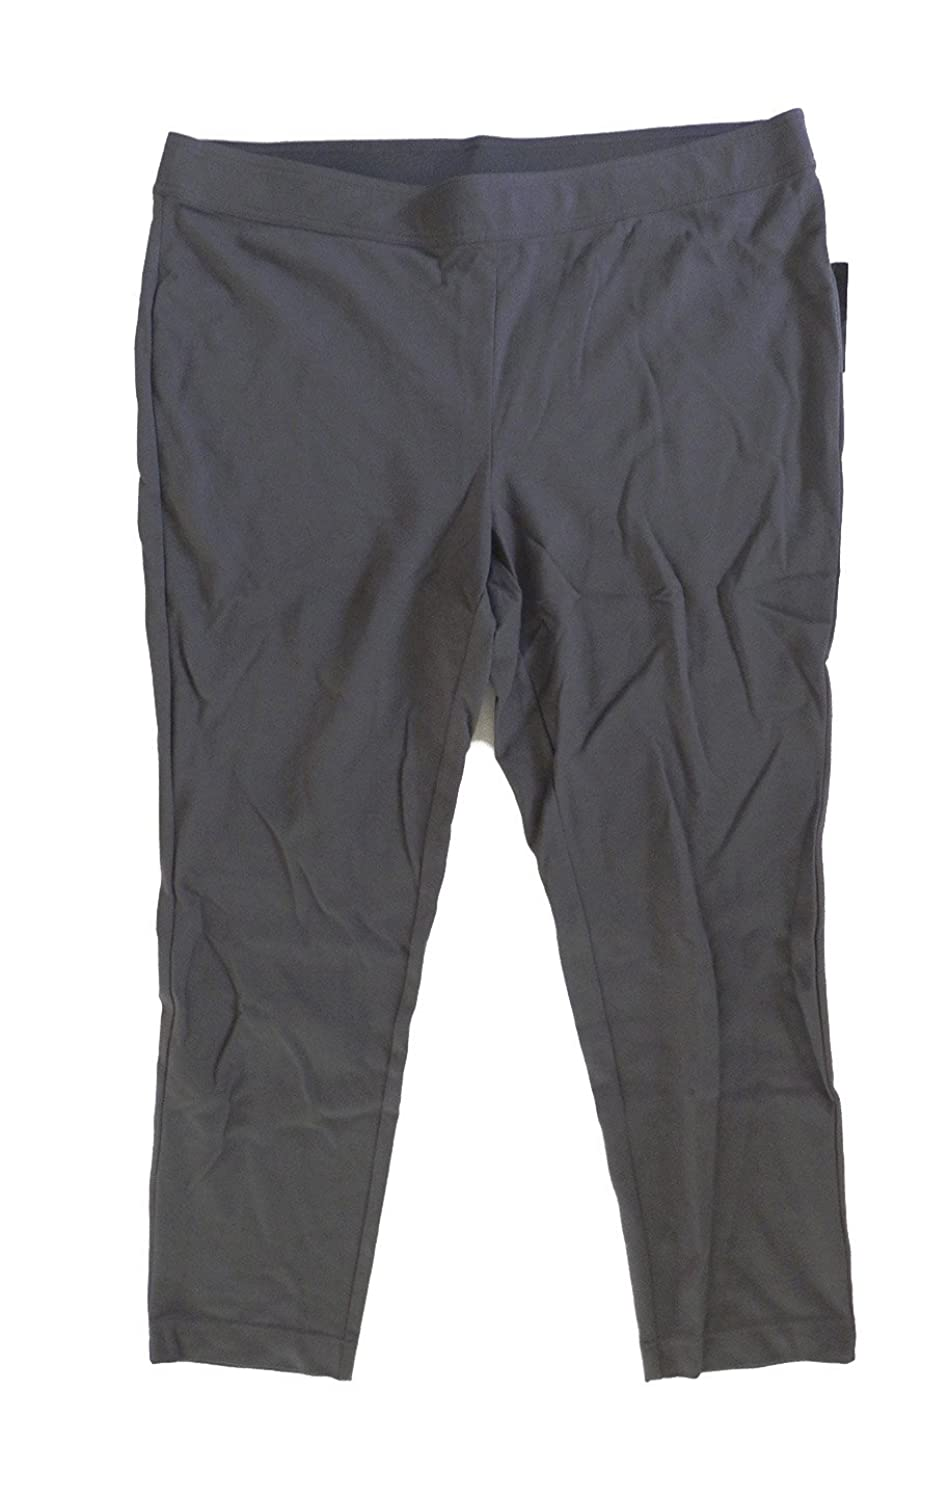 Inc. International Concepts Women's Pull On Pants